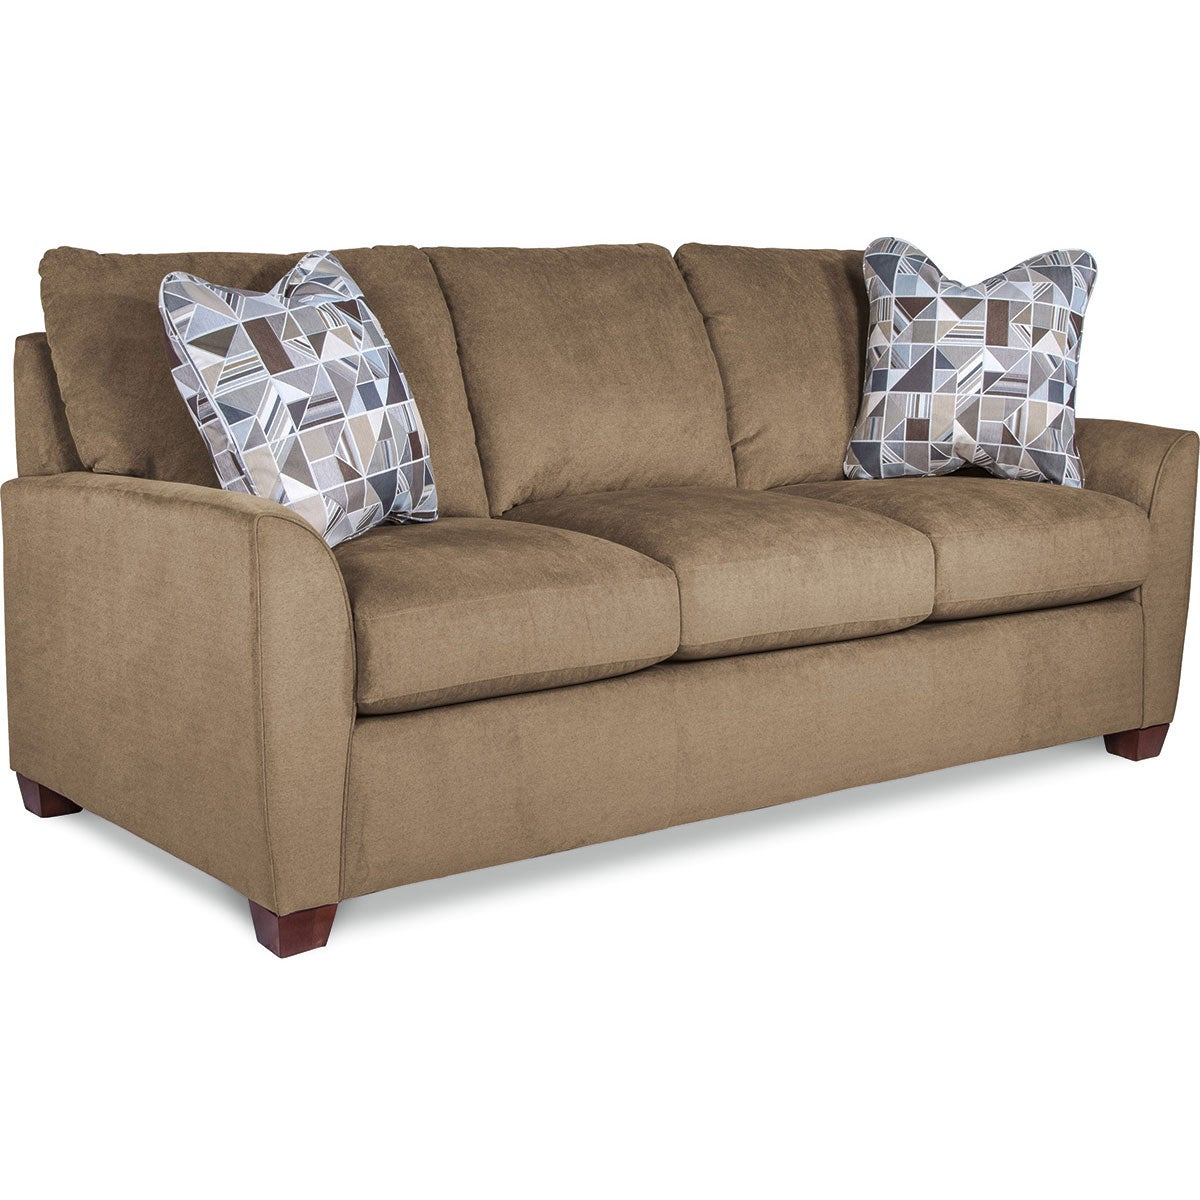 Amy premier sofa for Sofa for